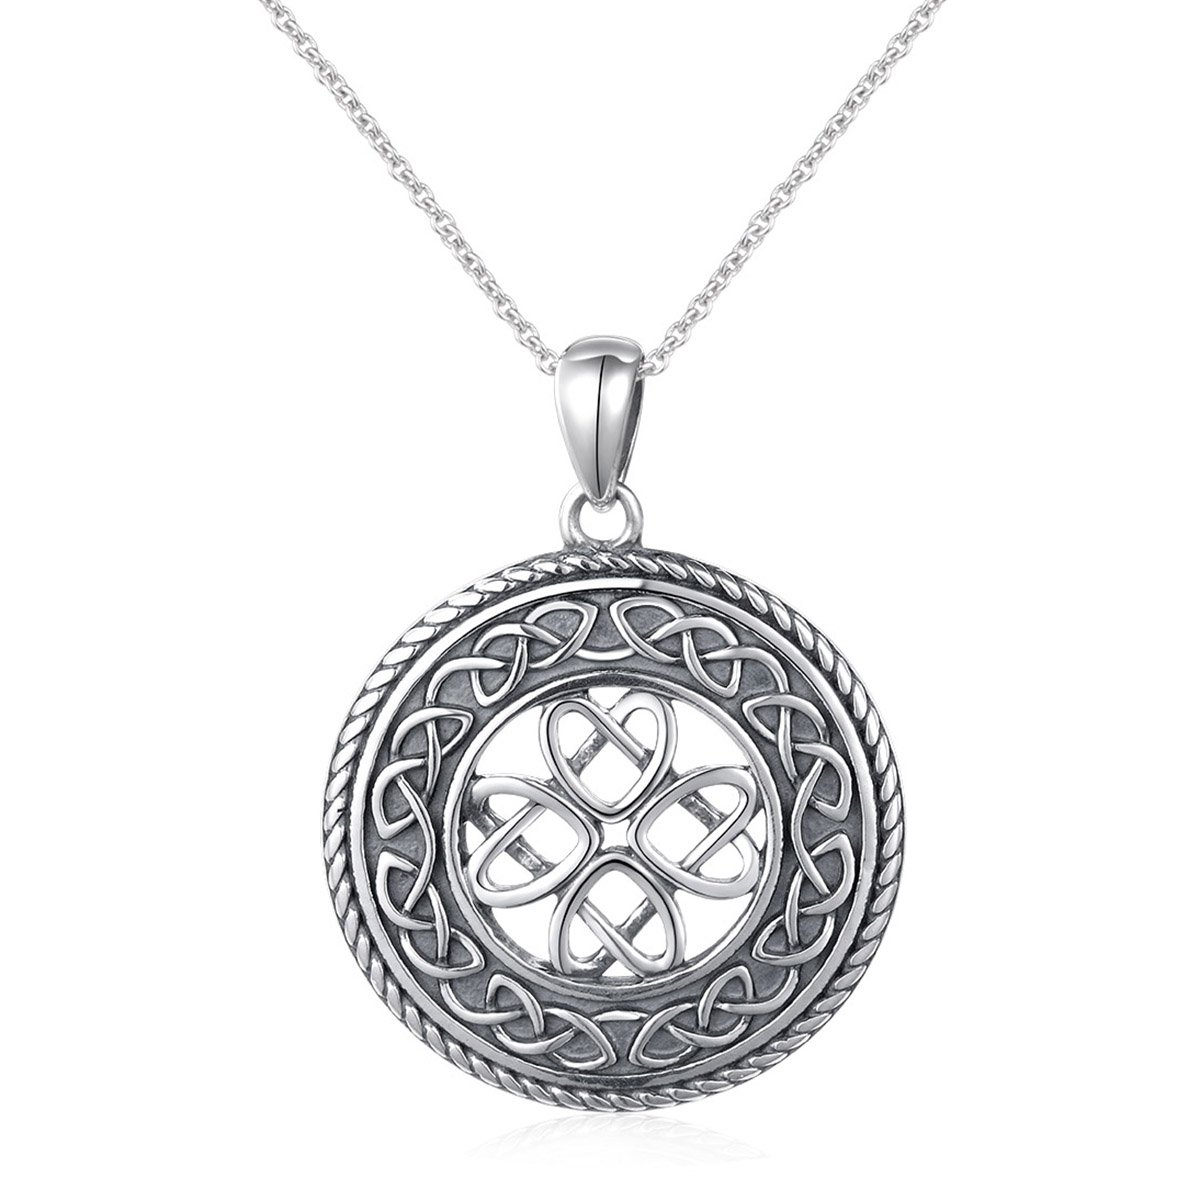 8acfb78ea4ba Amazon.com  925 Sterling Silver Jewelry Oxidized Good Luck Irish Knot Celtic  Medallion Round Pendant Necklace